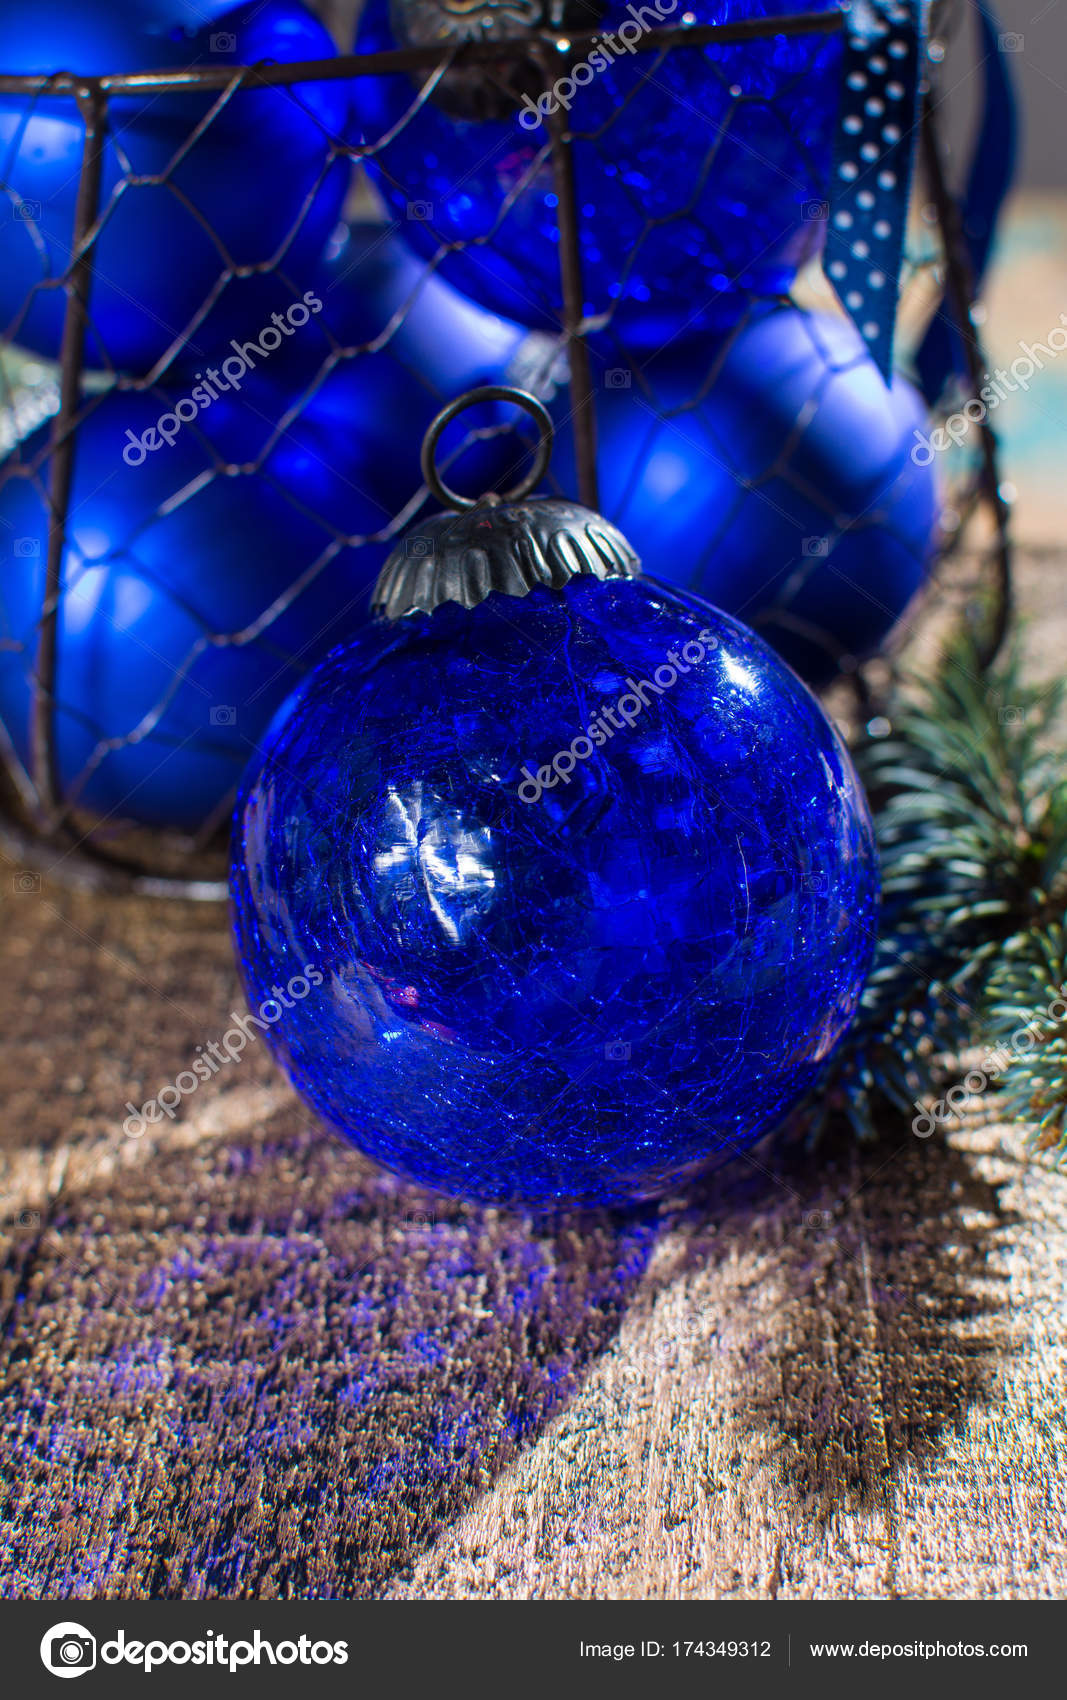 Old Vintage Cobalt Blue Christmas Tree Balls From Glass Stock Photo C Foto Pixel Web De 174349312